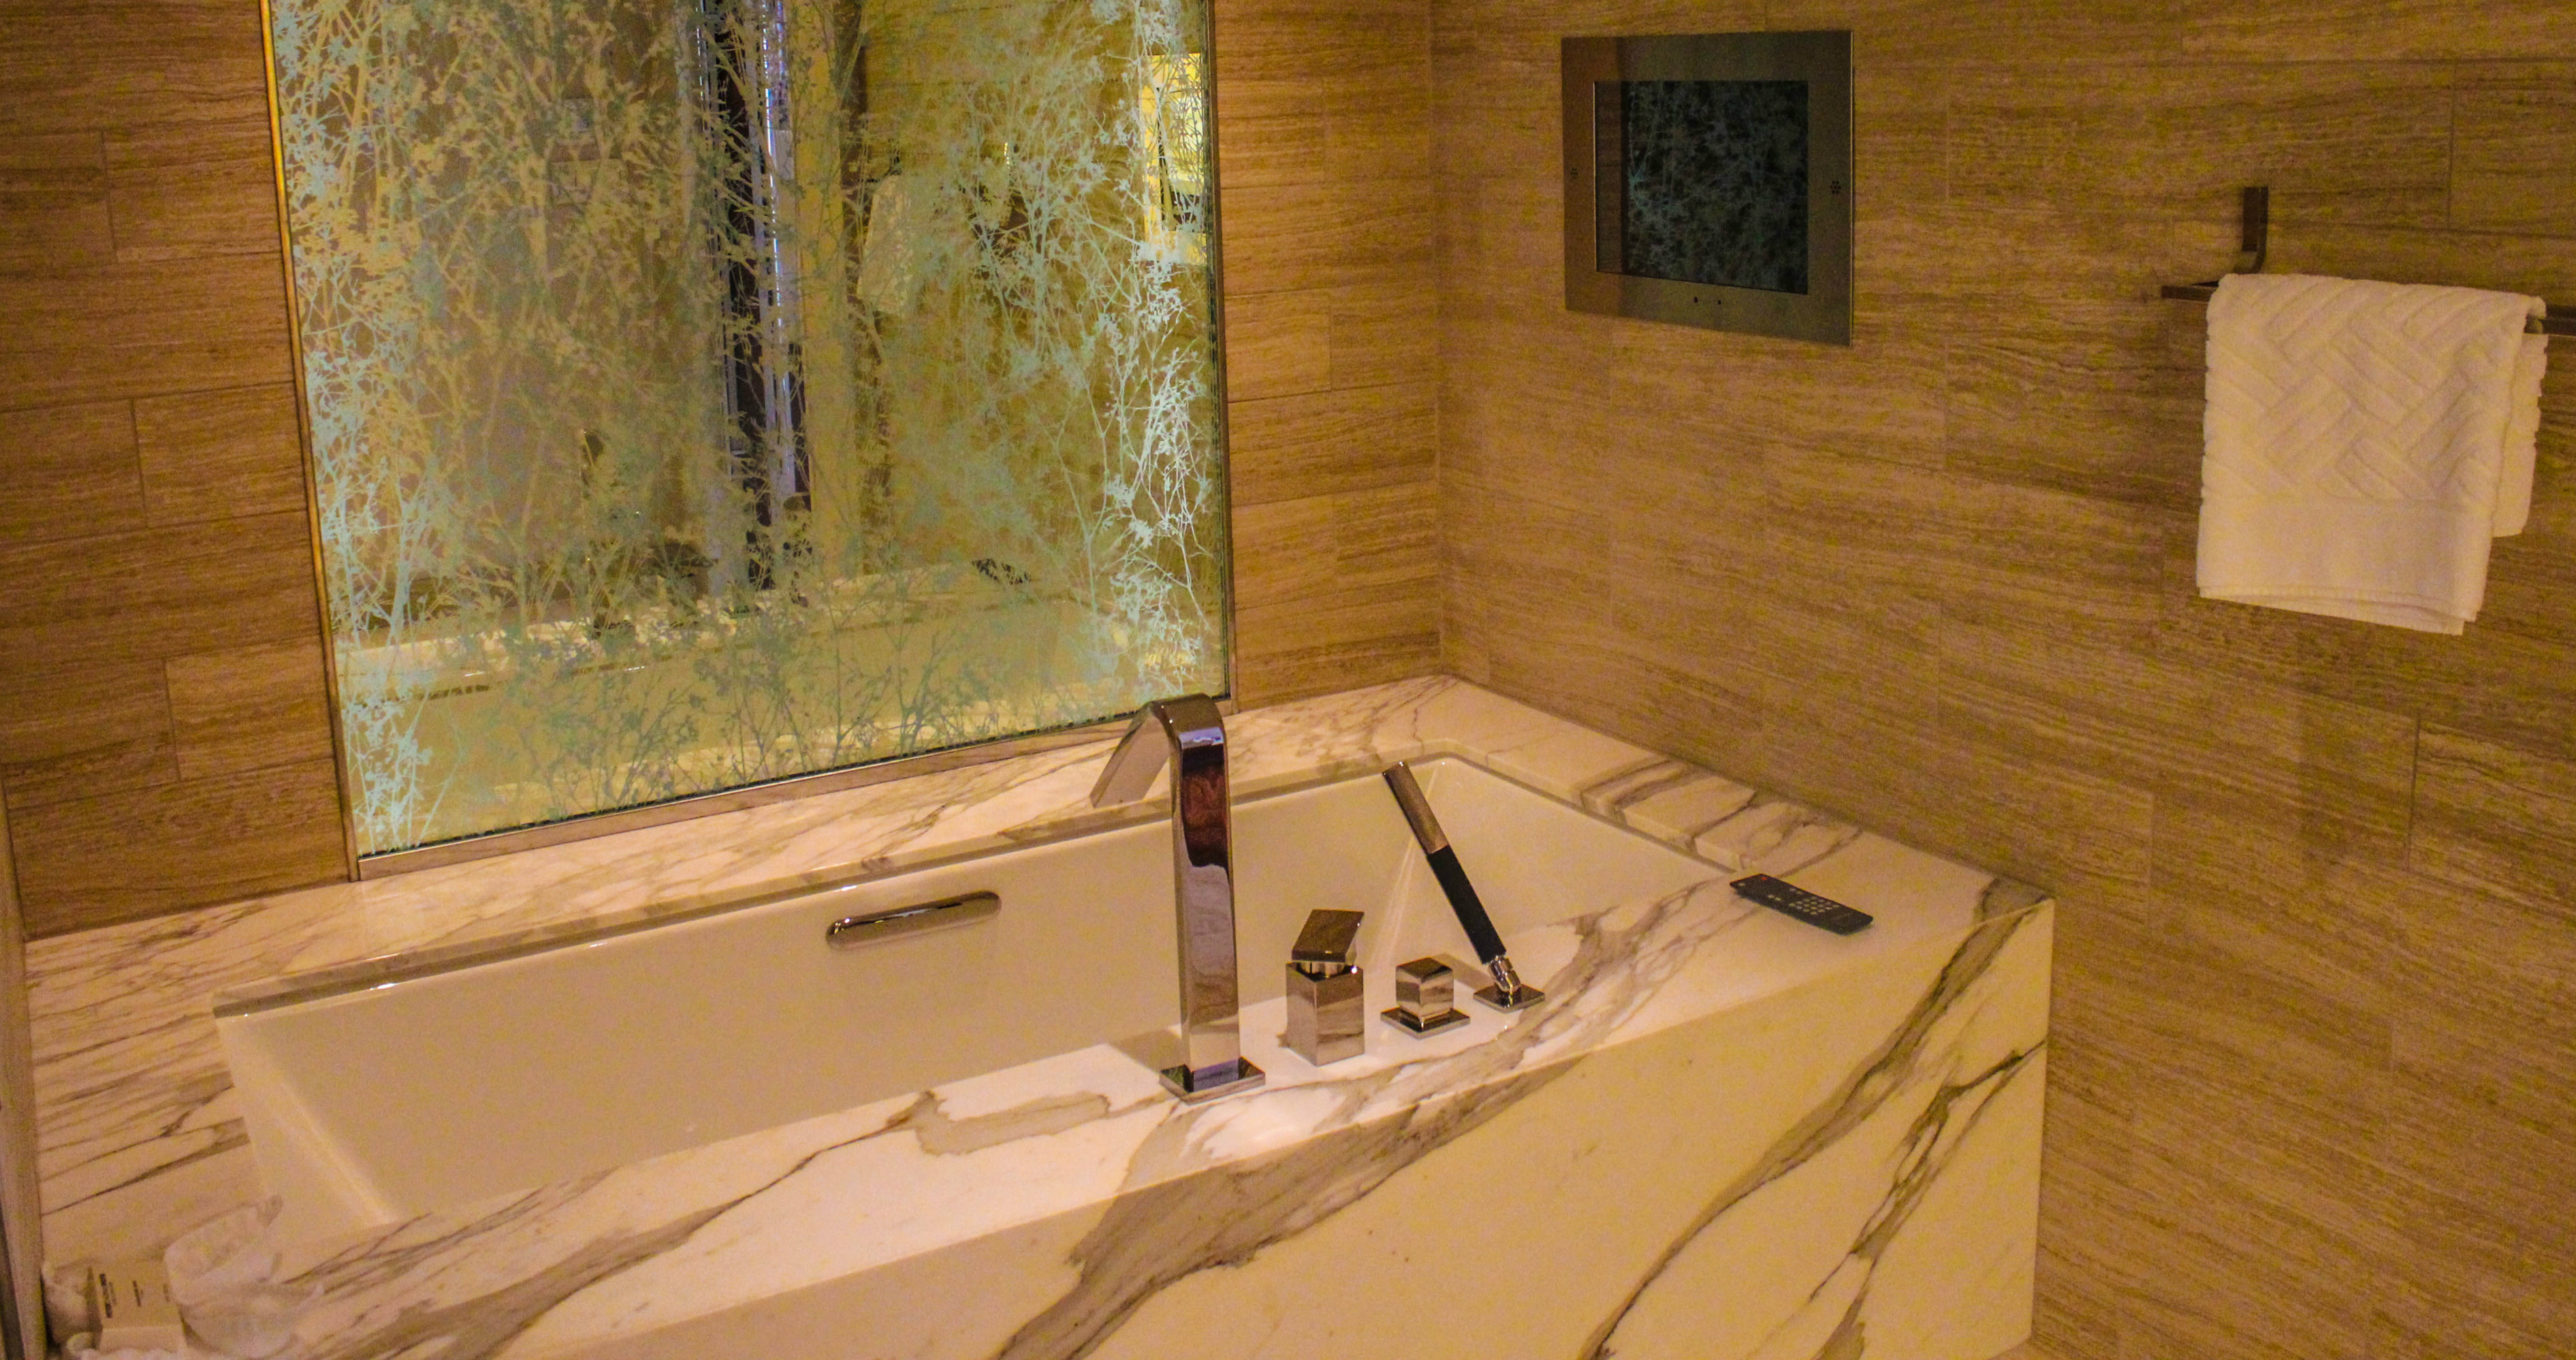 Hilton McLean renovated suite bathtub